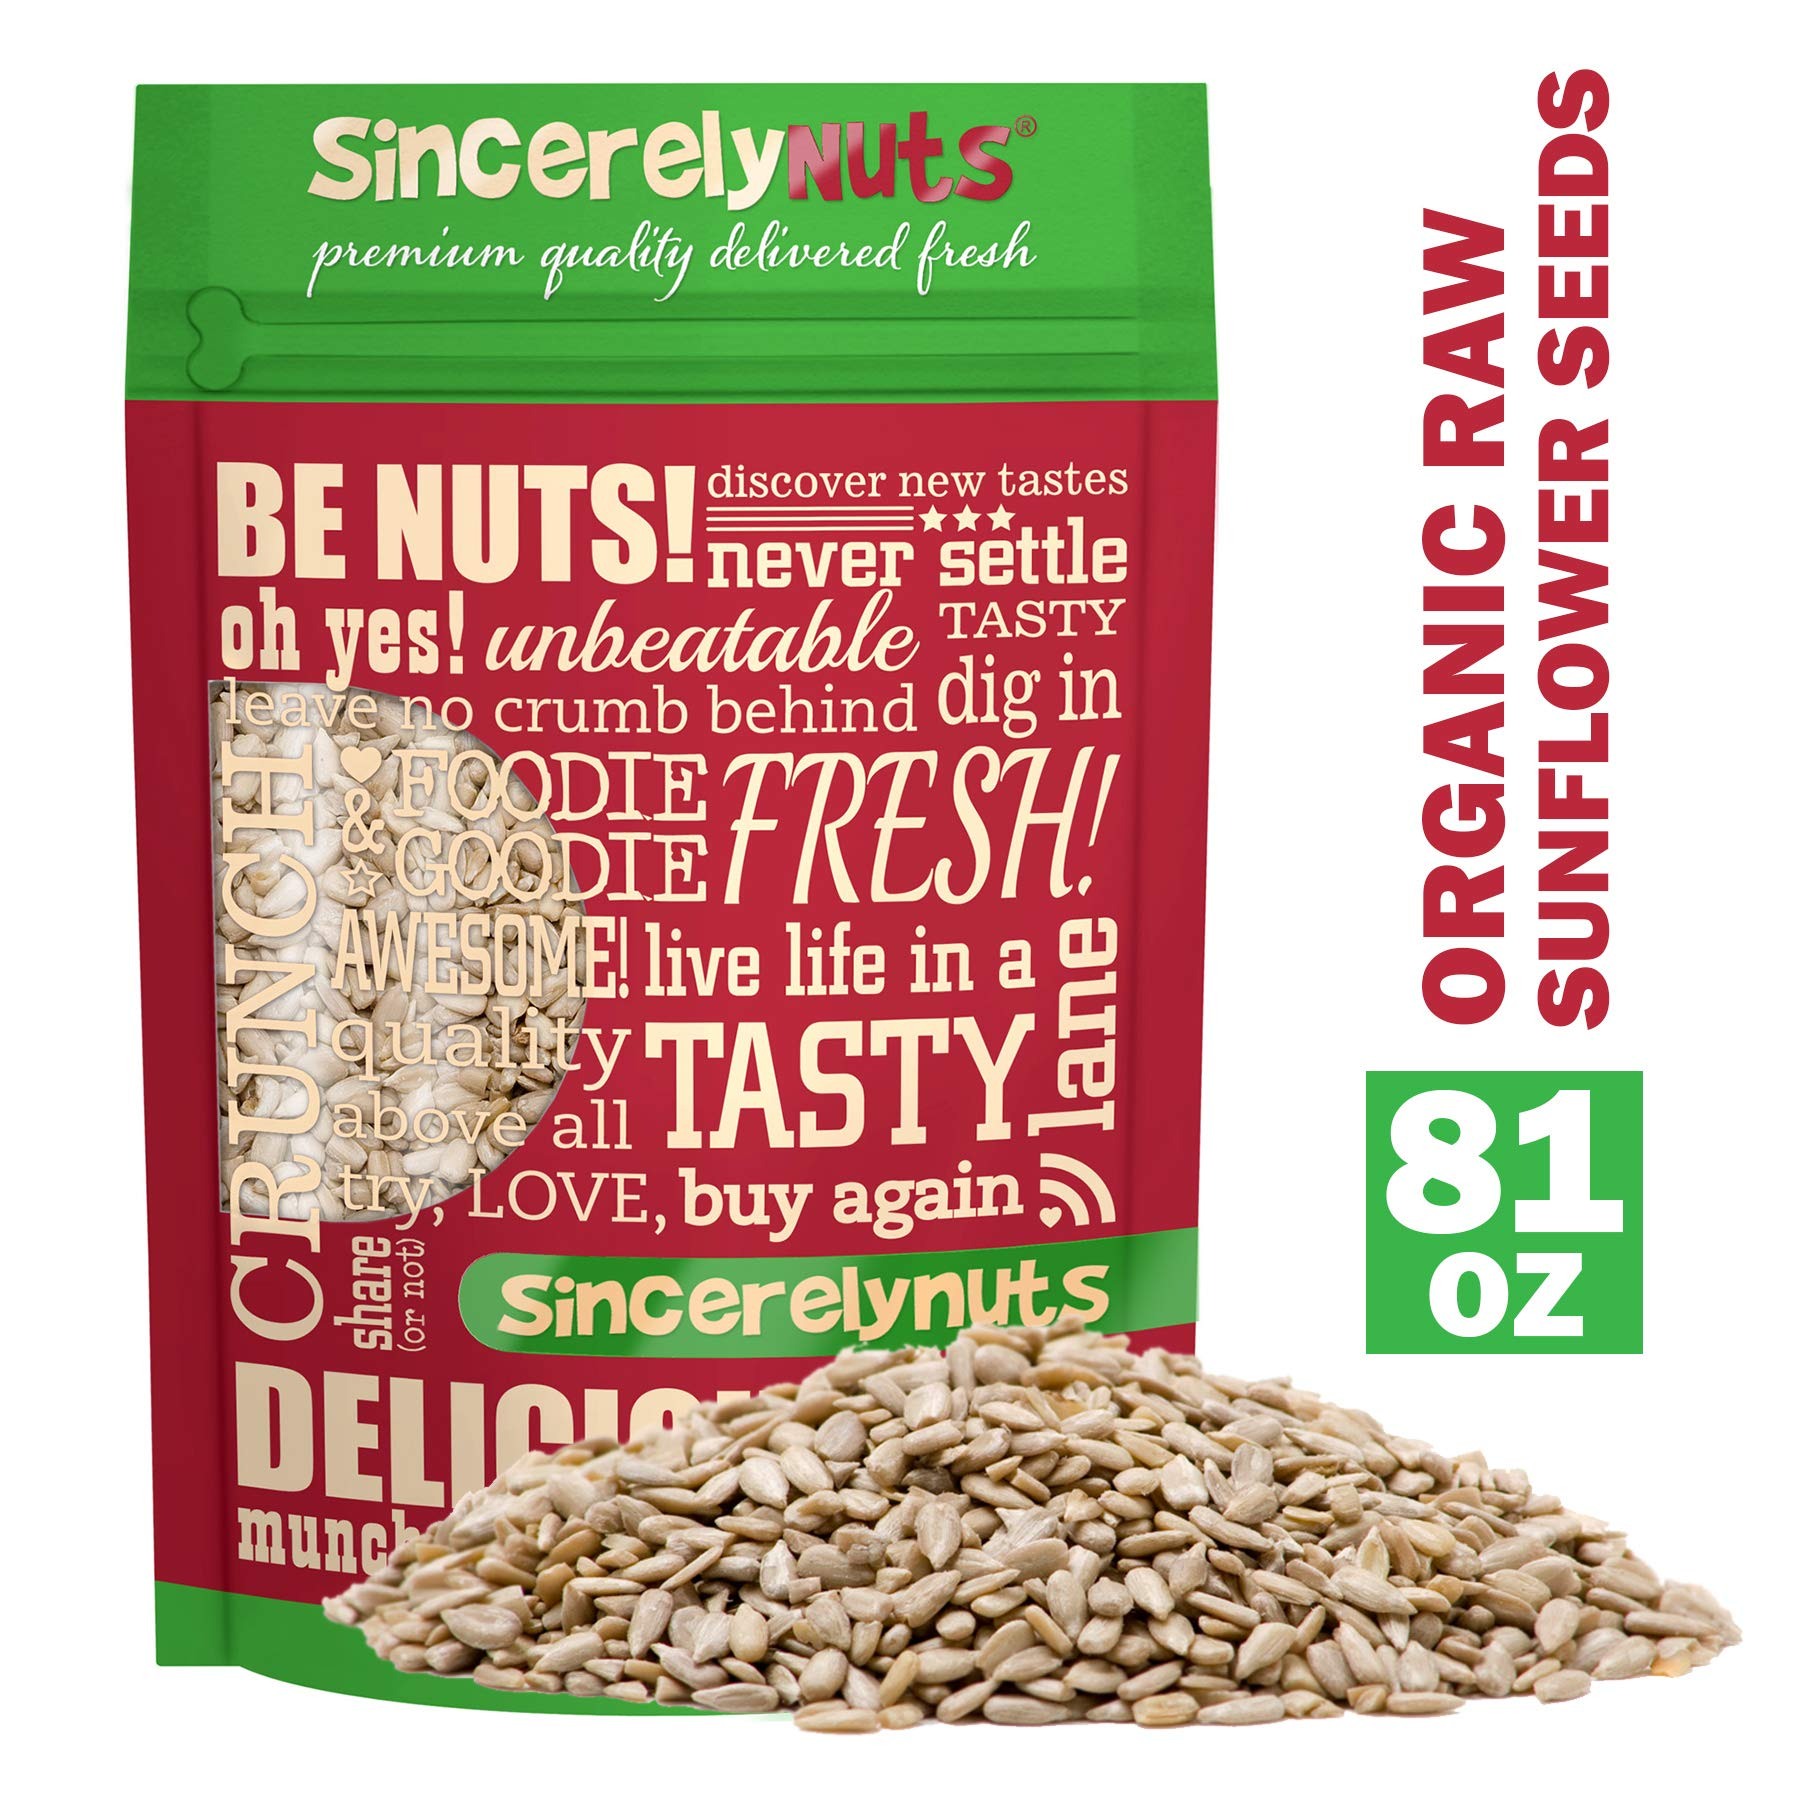 Sincerely Nuts Organic Sunflower Seed Kernels Raw (No Shell) (5lb bag) | Nutritious Antioxidant Rich Superfood Snack | Source of Protein, Fiber, Essential Vitamins & Minerals | Vegan and Gluten Free by Sincerely Nuts